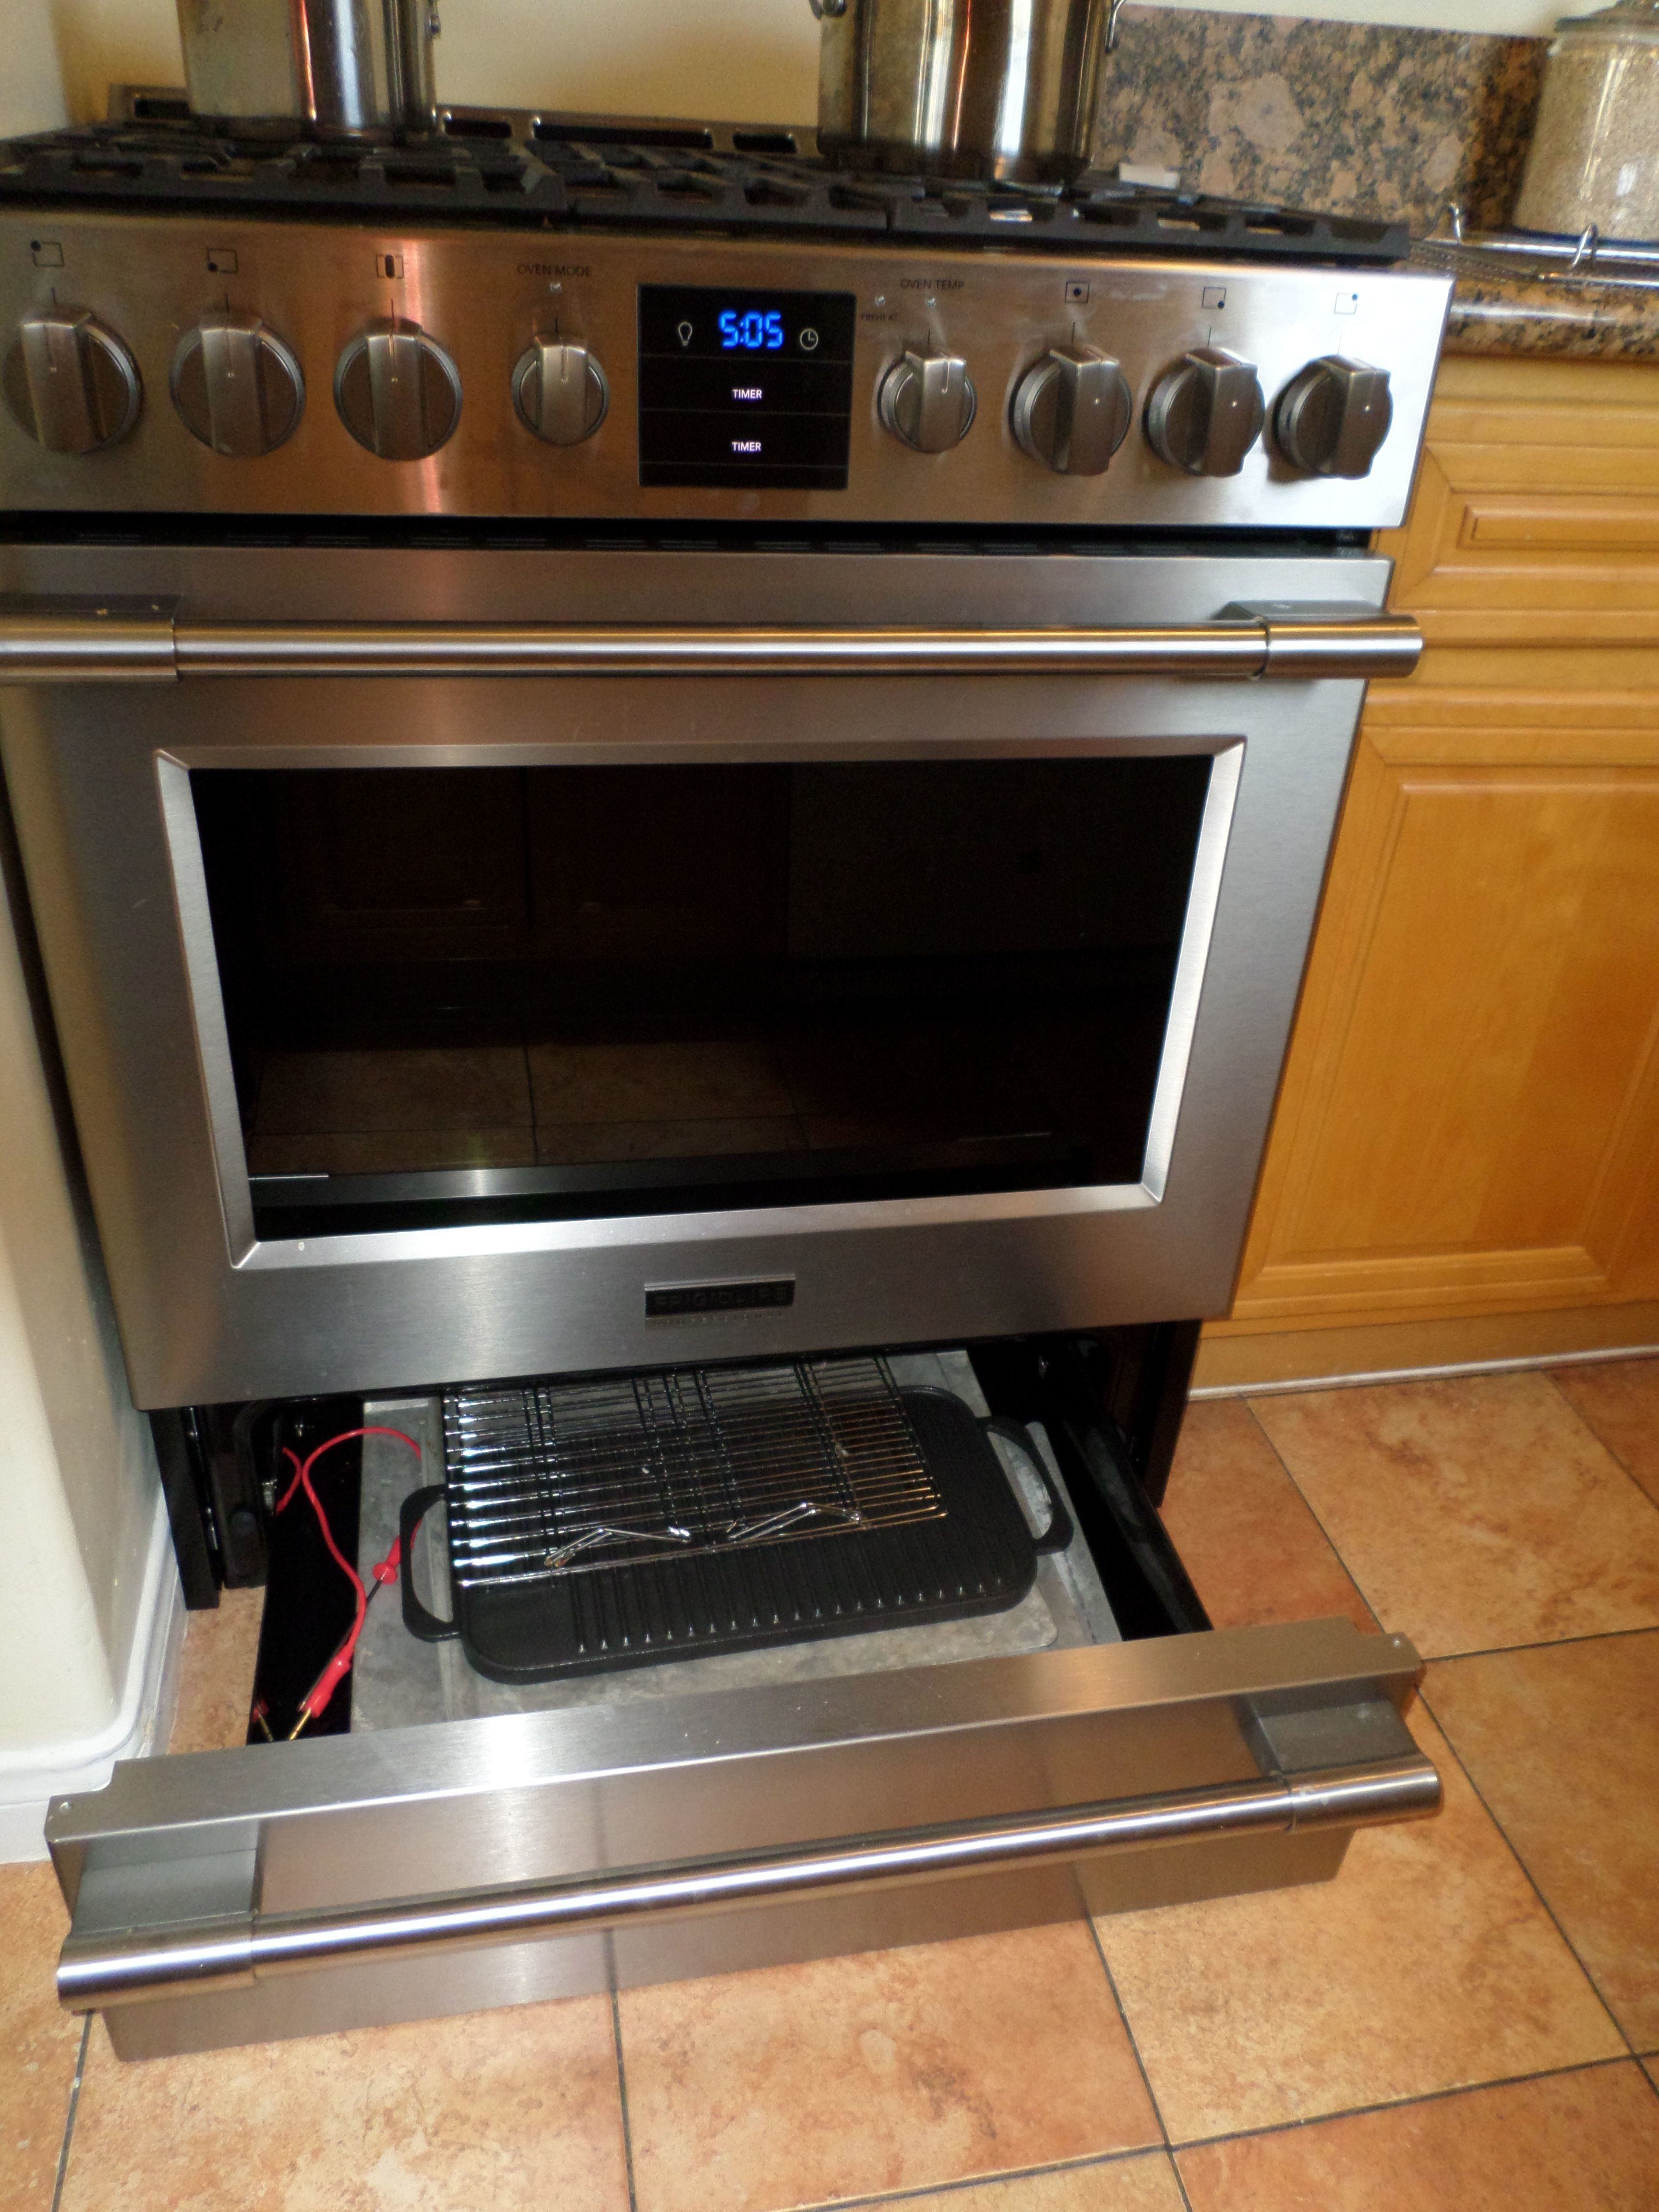 Professional Electric Ranges For The Home Top 166 Reviews And Complaints About Frigidaire Gas Ranges Page 2